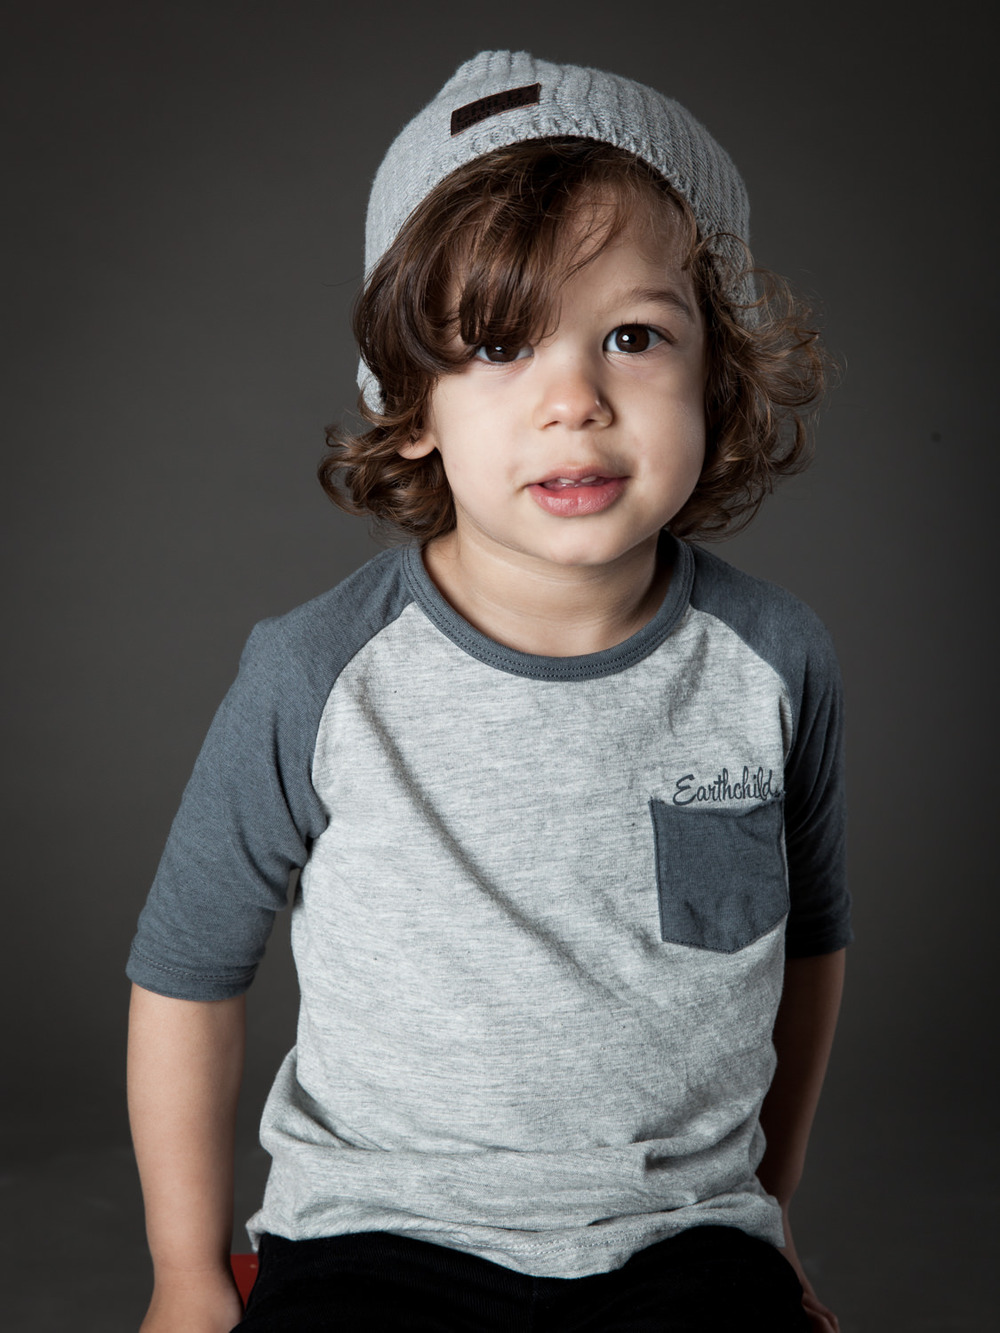 tim gerges capetown photographer kids fashion-1810.jpg